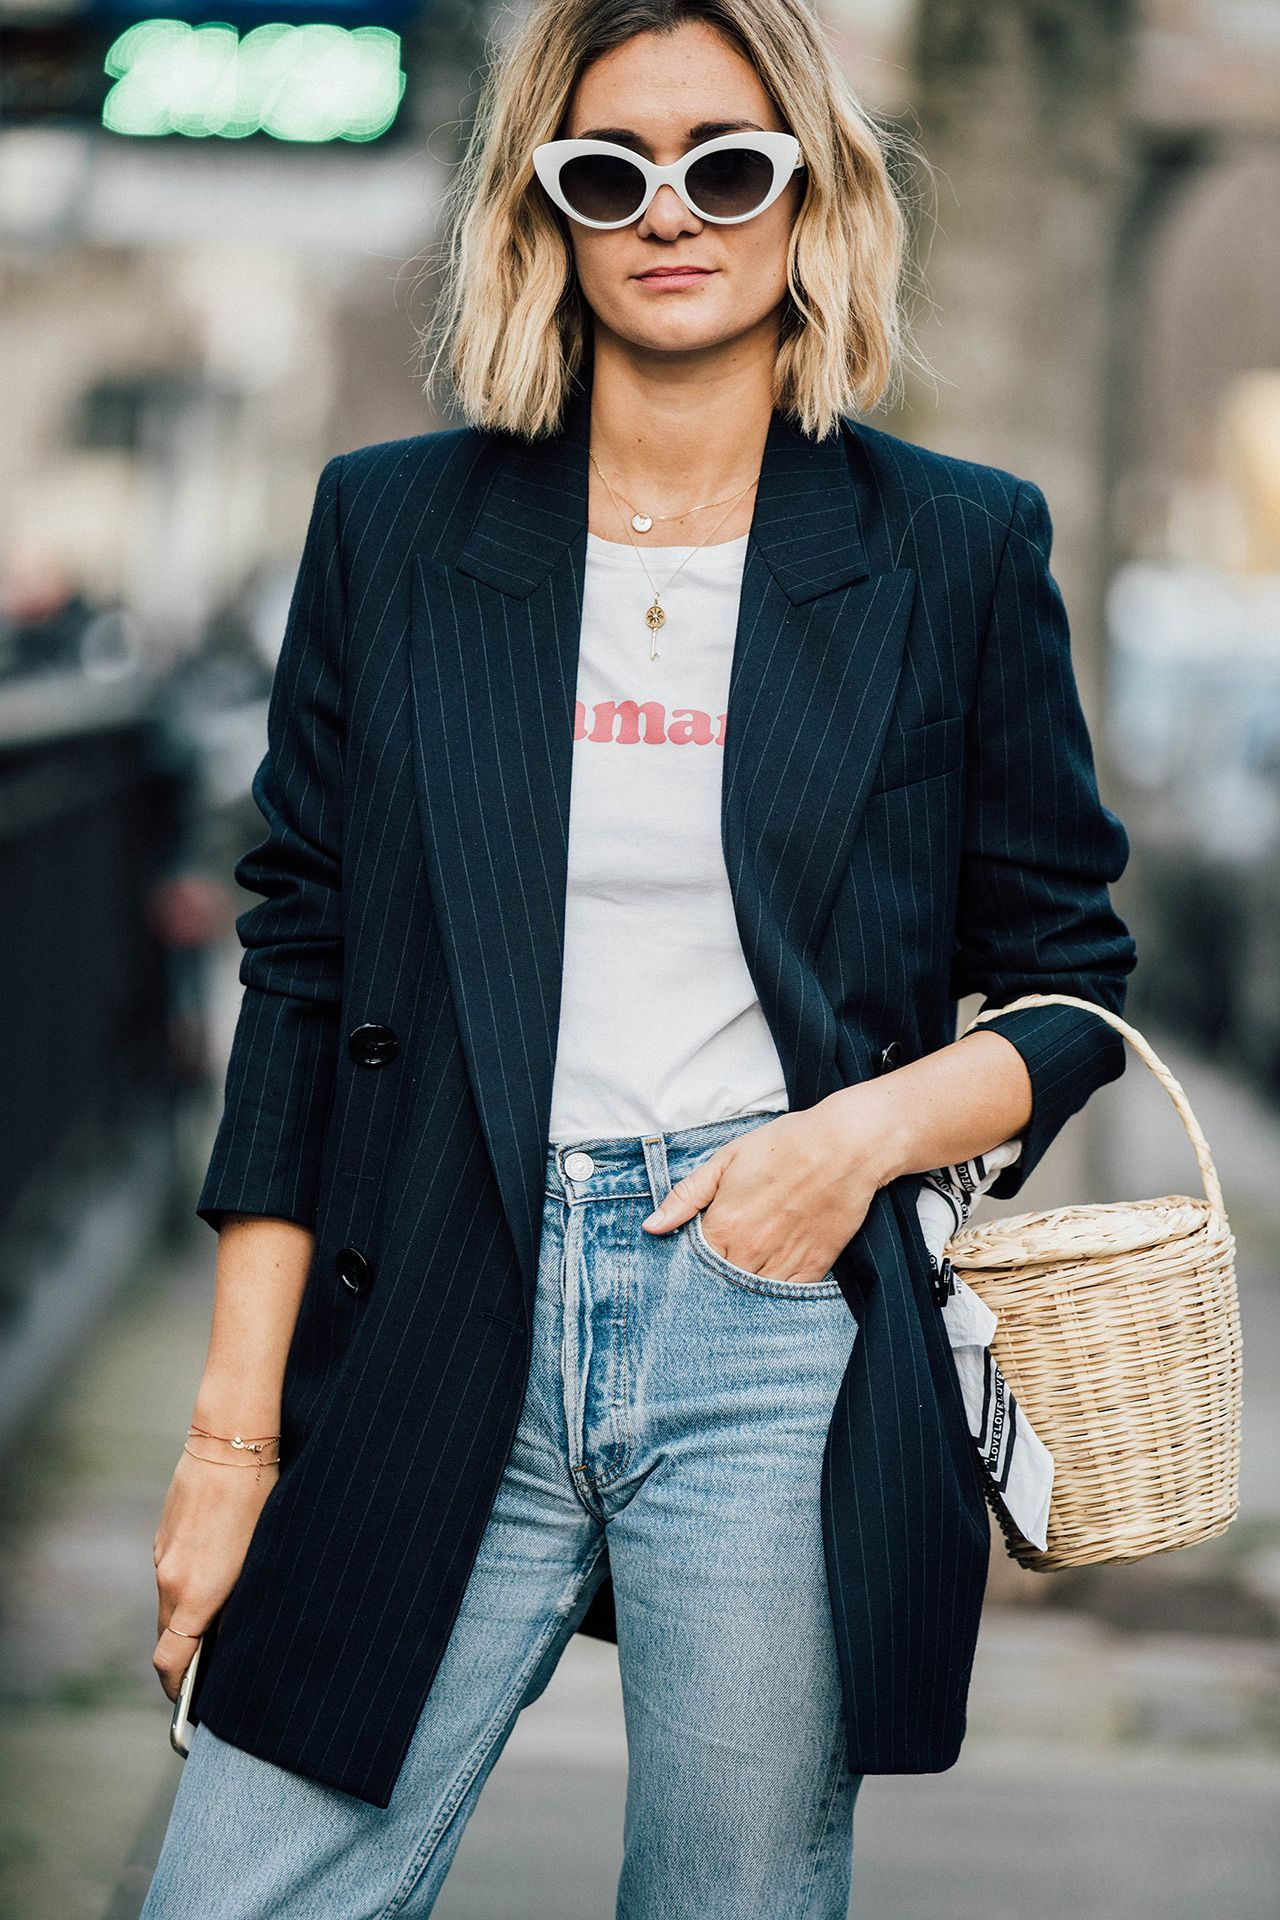 Easy outfit yet so cool. Same white sunglasses. Black blazer. Jeans. Statement tee.